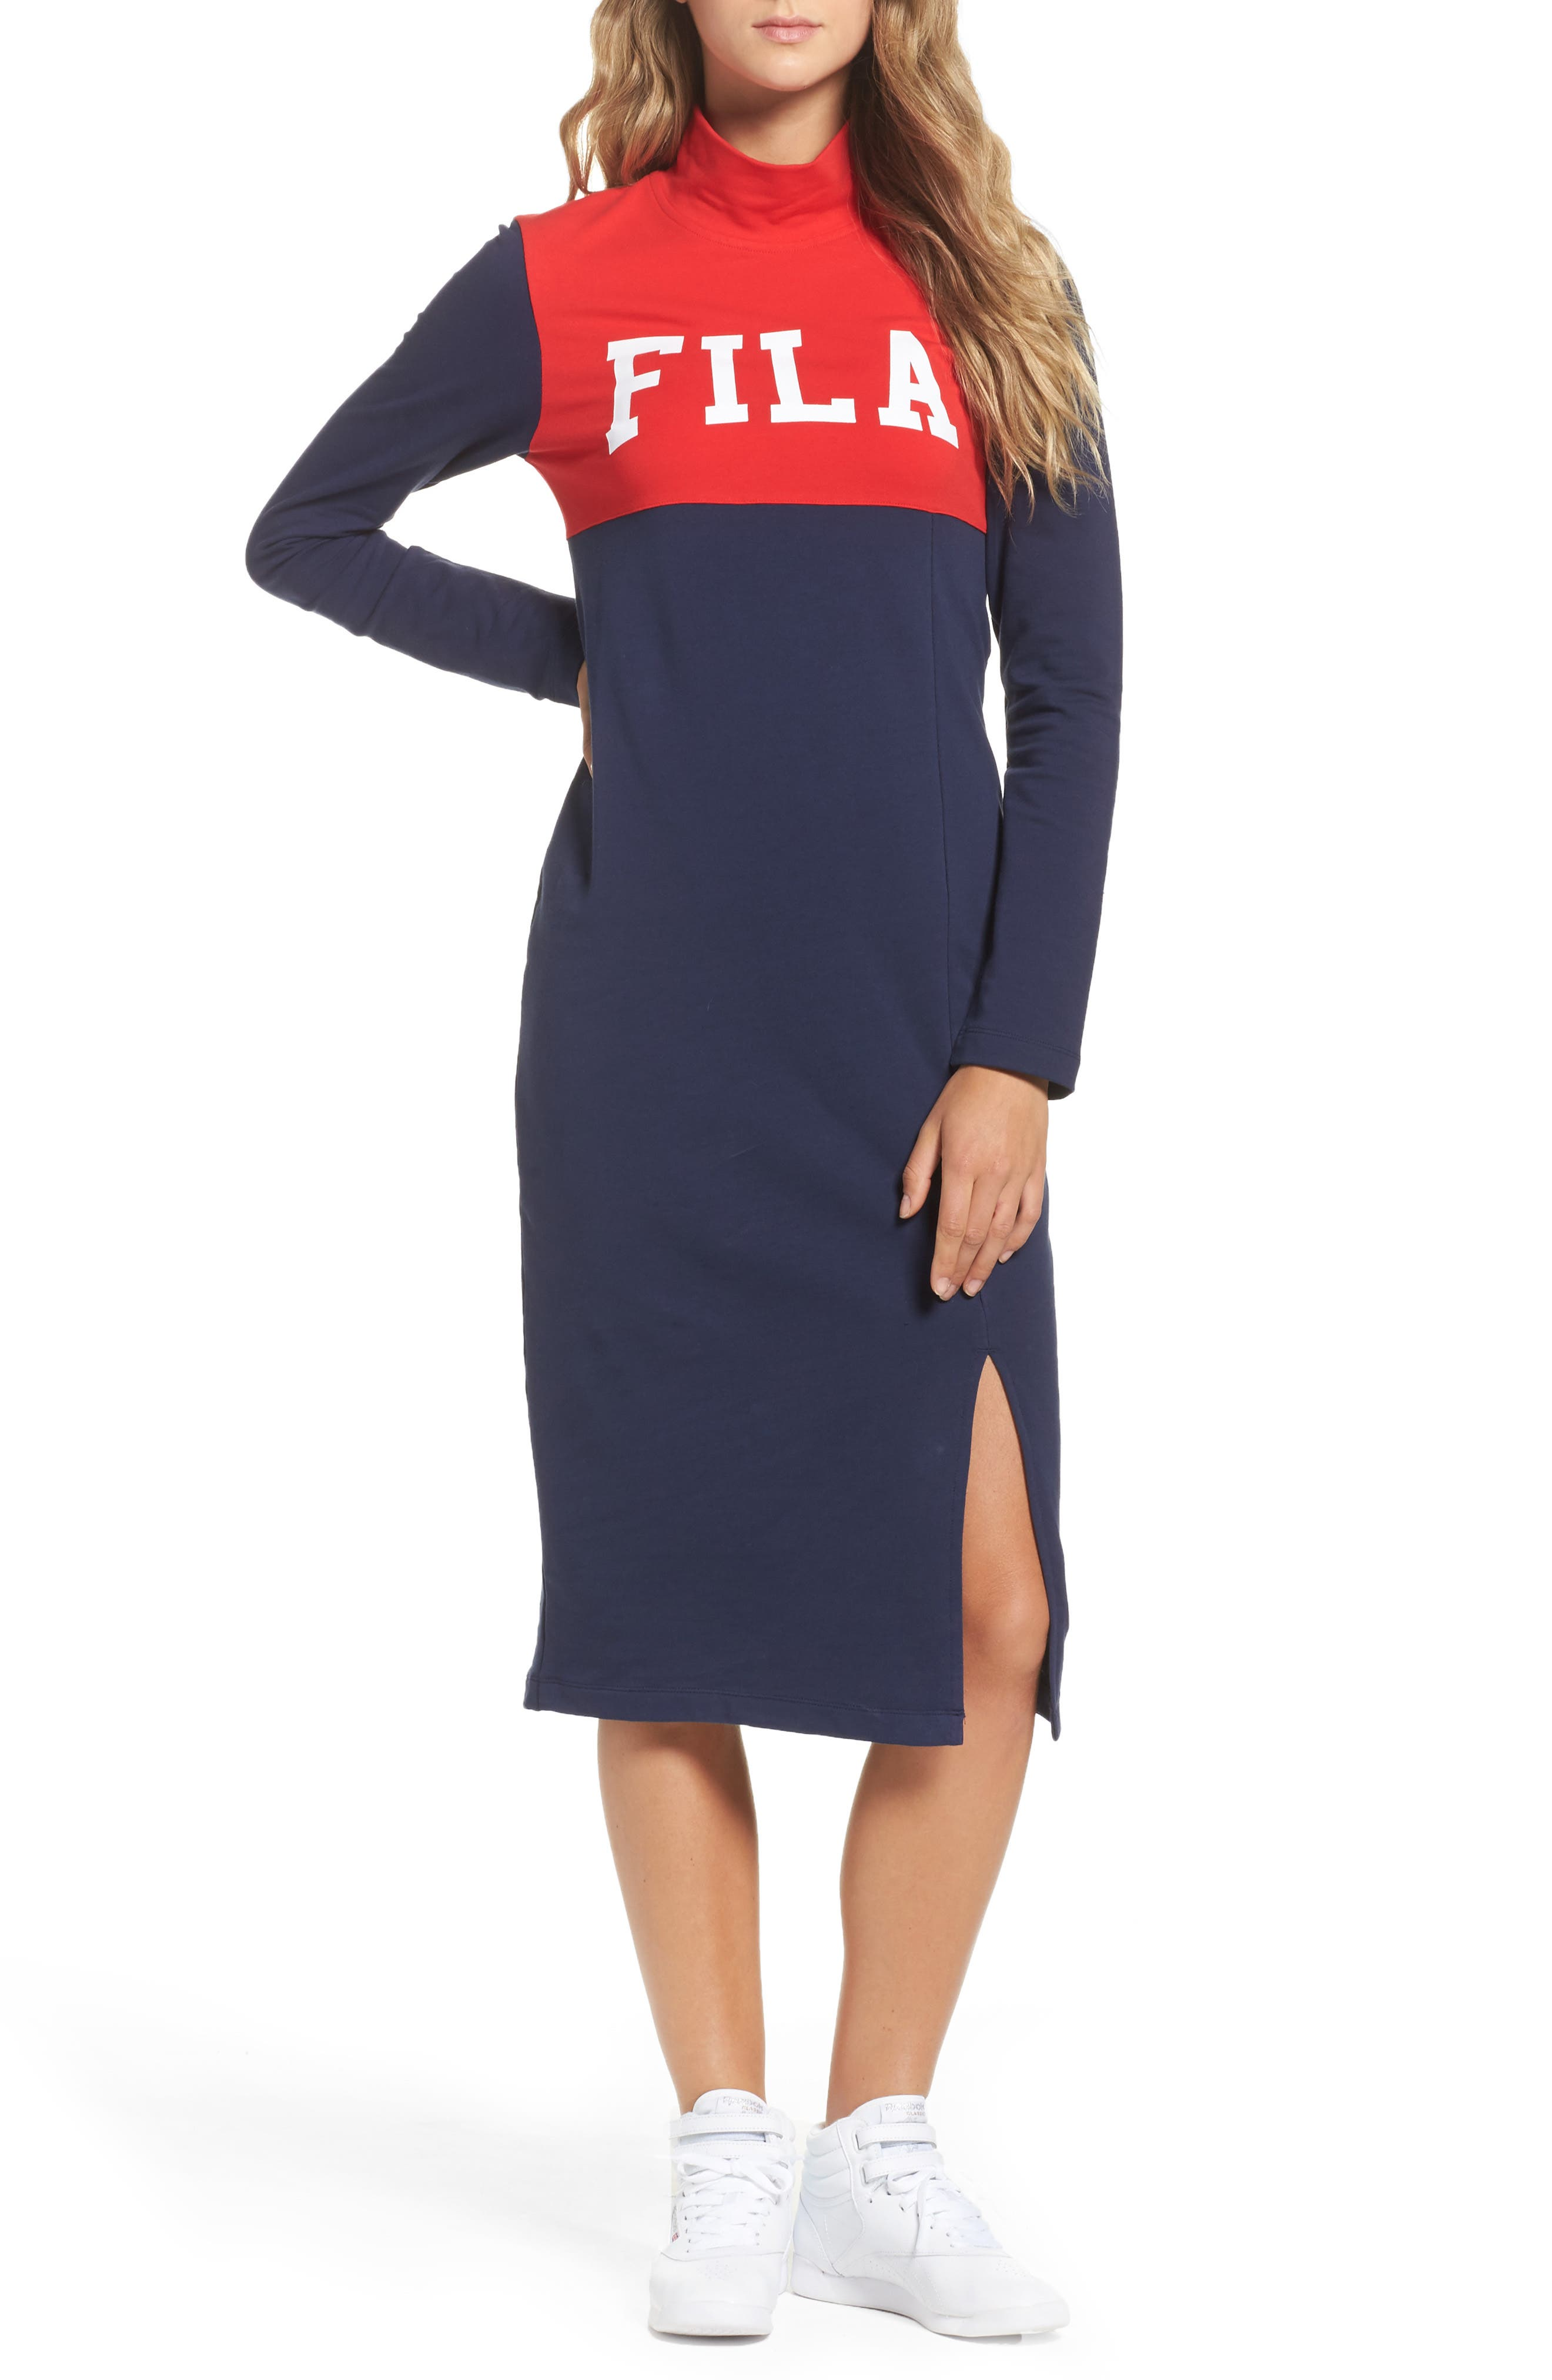 Rio Midi Dress,                             Main thumbnail 1, color,                             Rio Red/ Navy/ Skyway